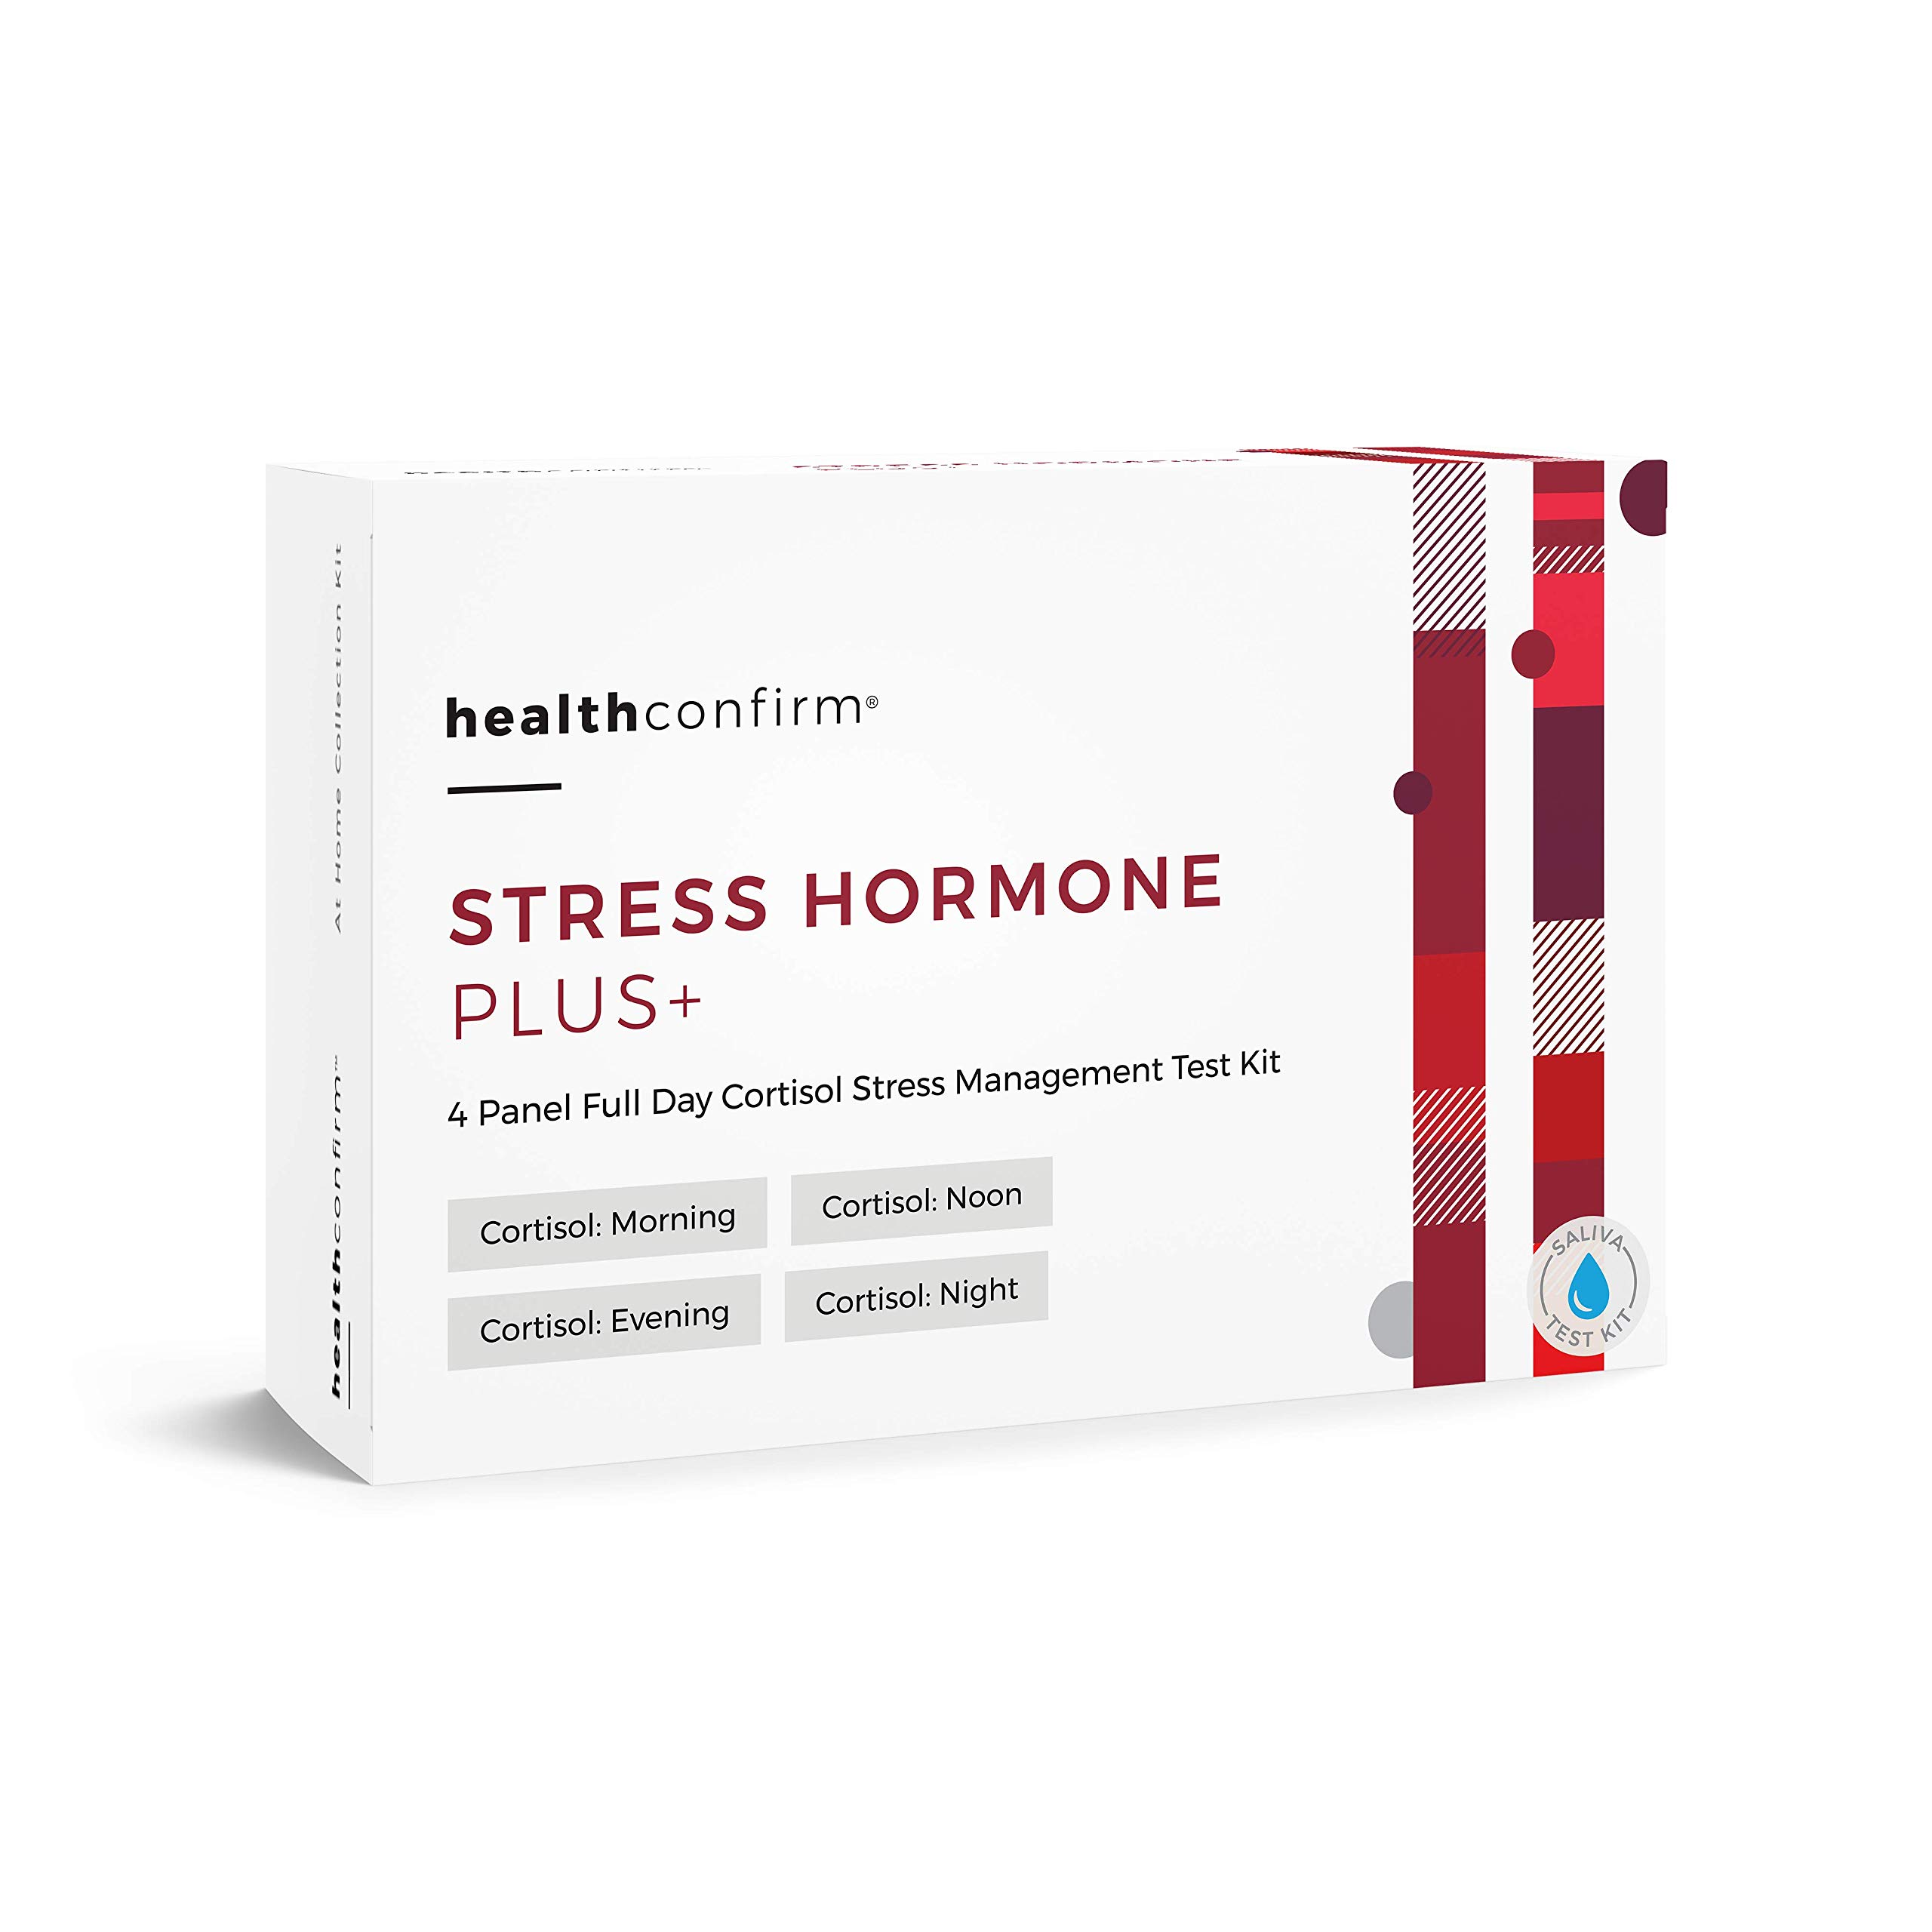 HealthConfirm Stress Hormone Plus, Full Day Cortisol Balance Saliva Collection Test Kit, Cortisol 4X (4 Panel) by HealthConfirm